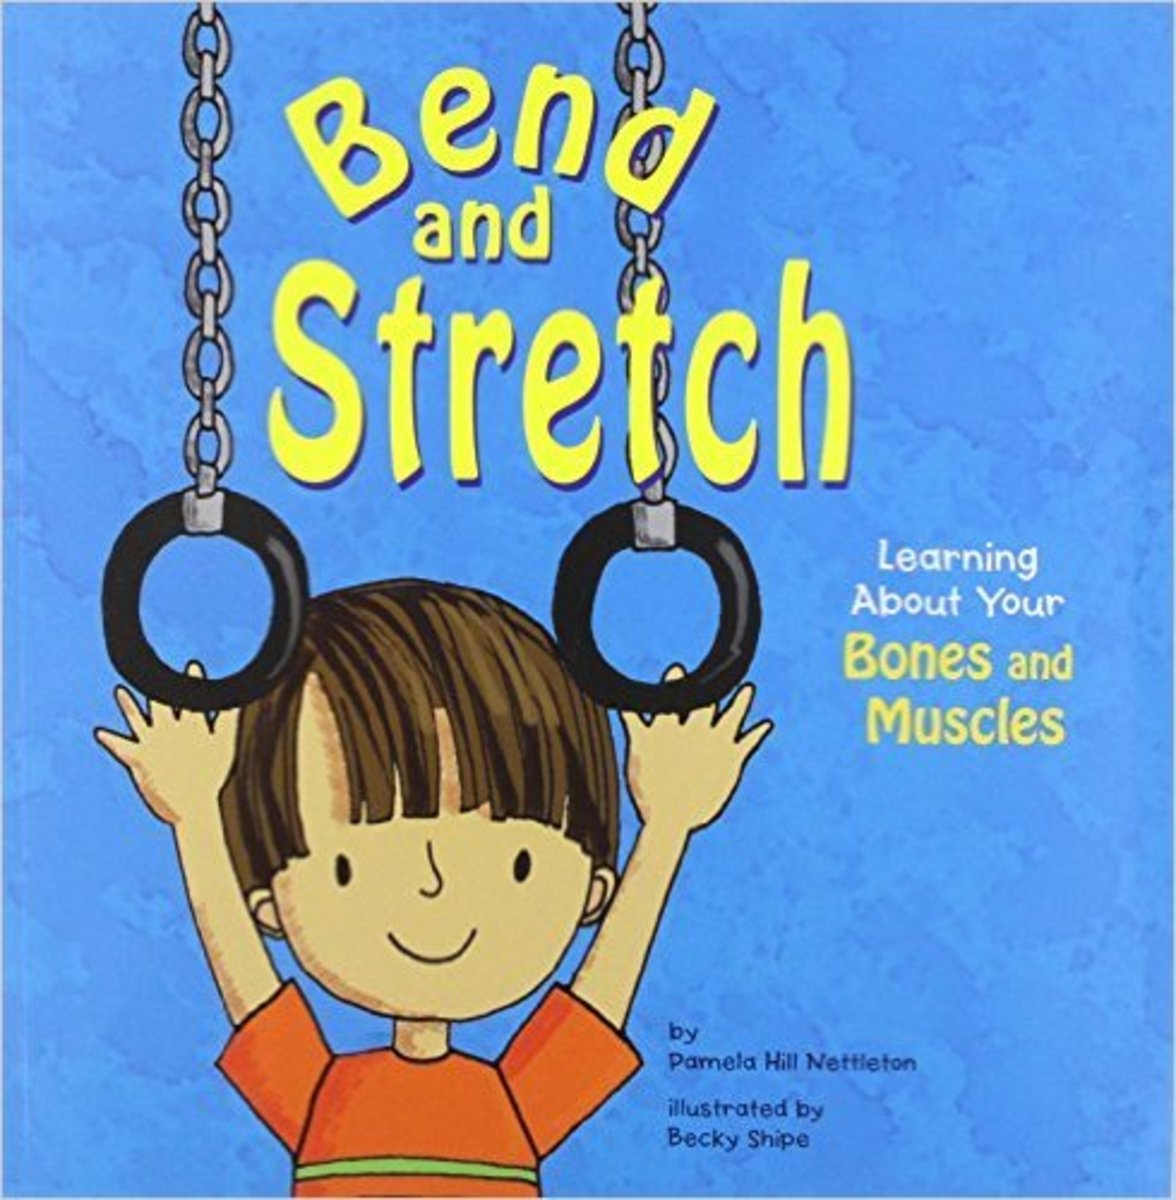 Bend and Stretch: Learning About Your Bones and Muscles (The Amazing Body) by Pamela Hill Nettleton